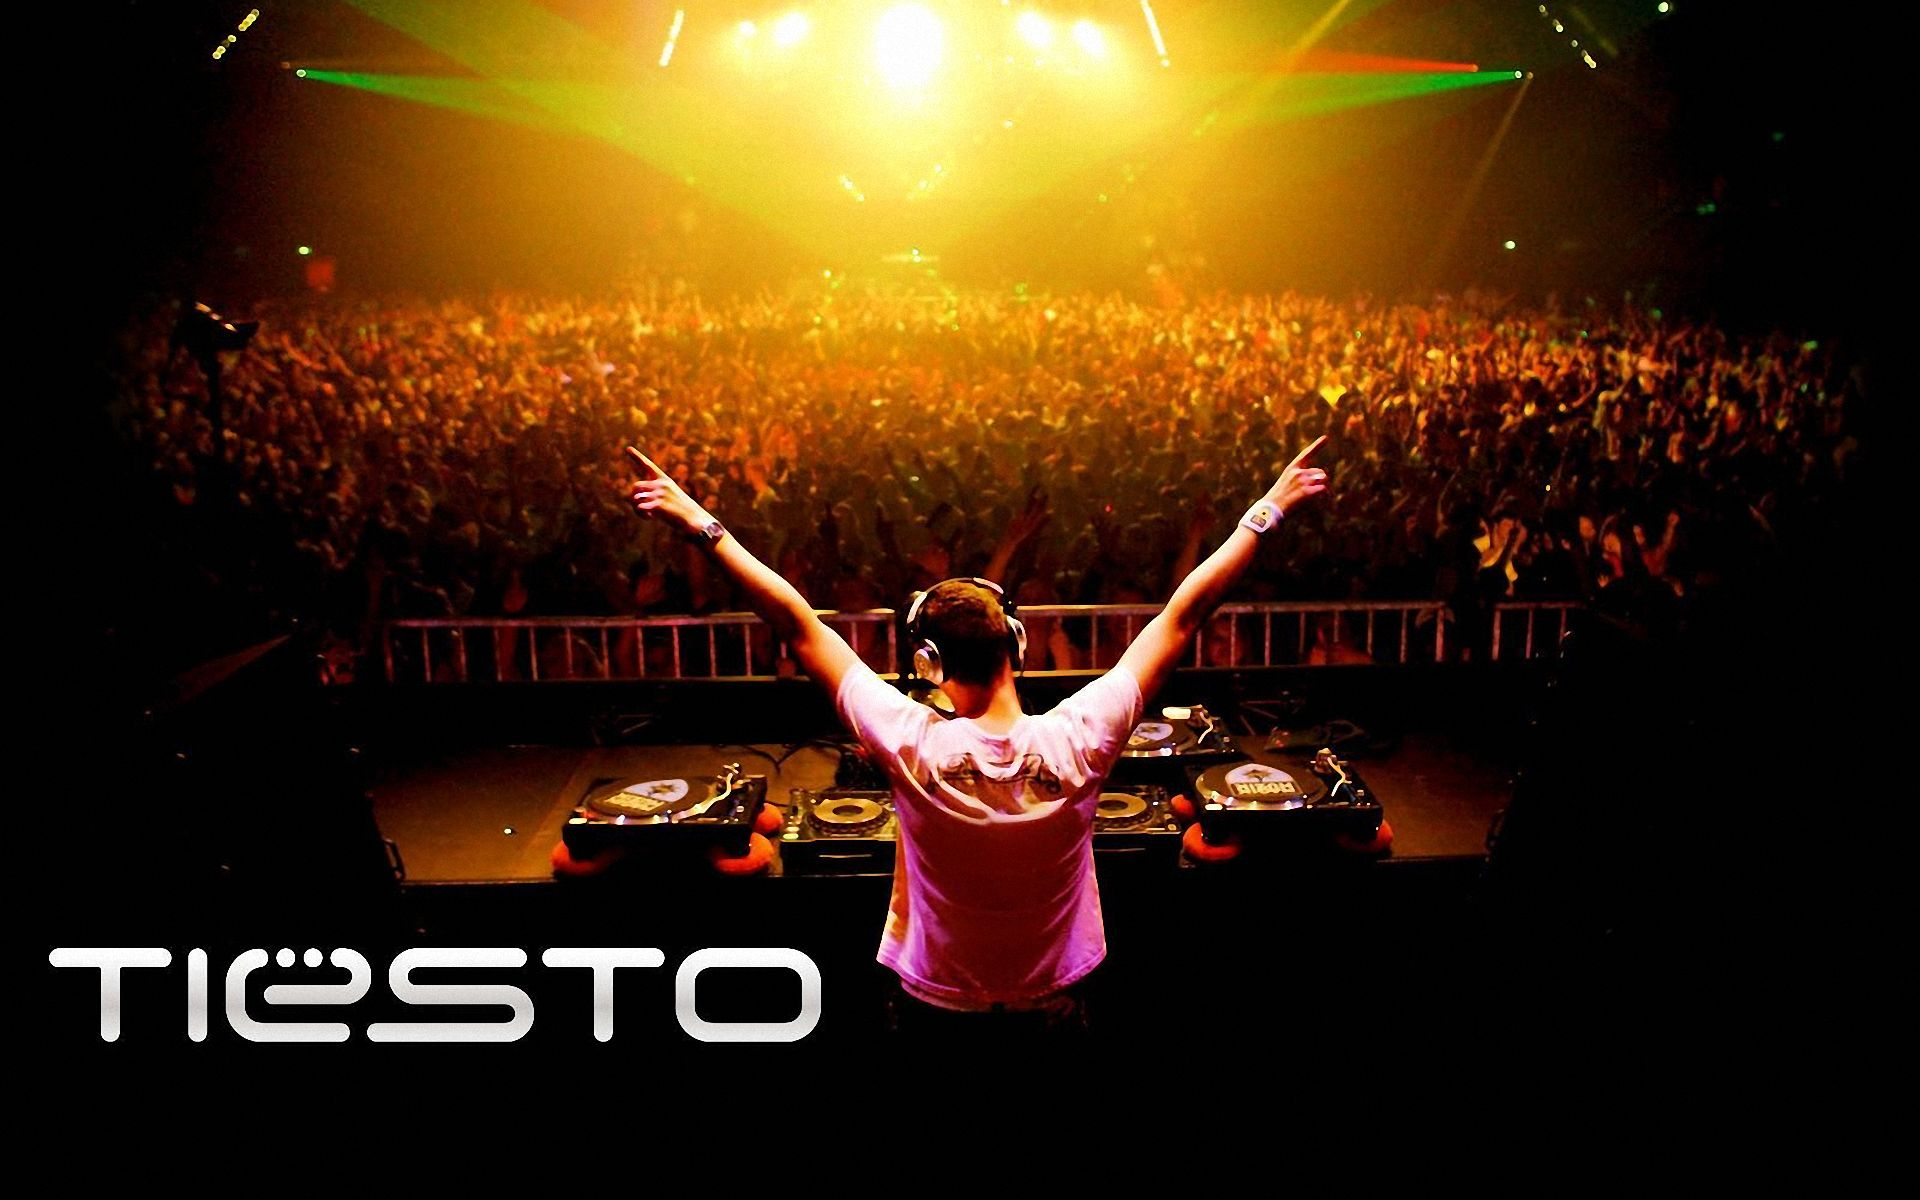 Tiesto Wallpaper